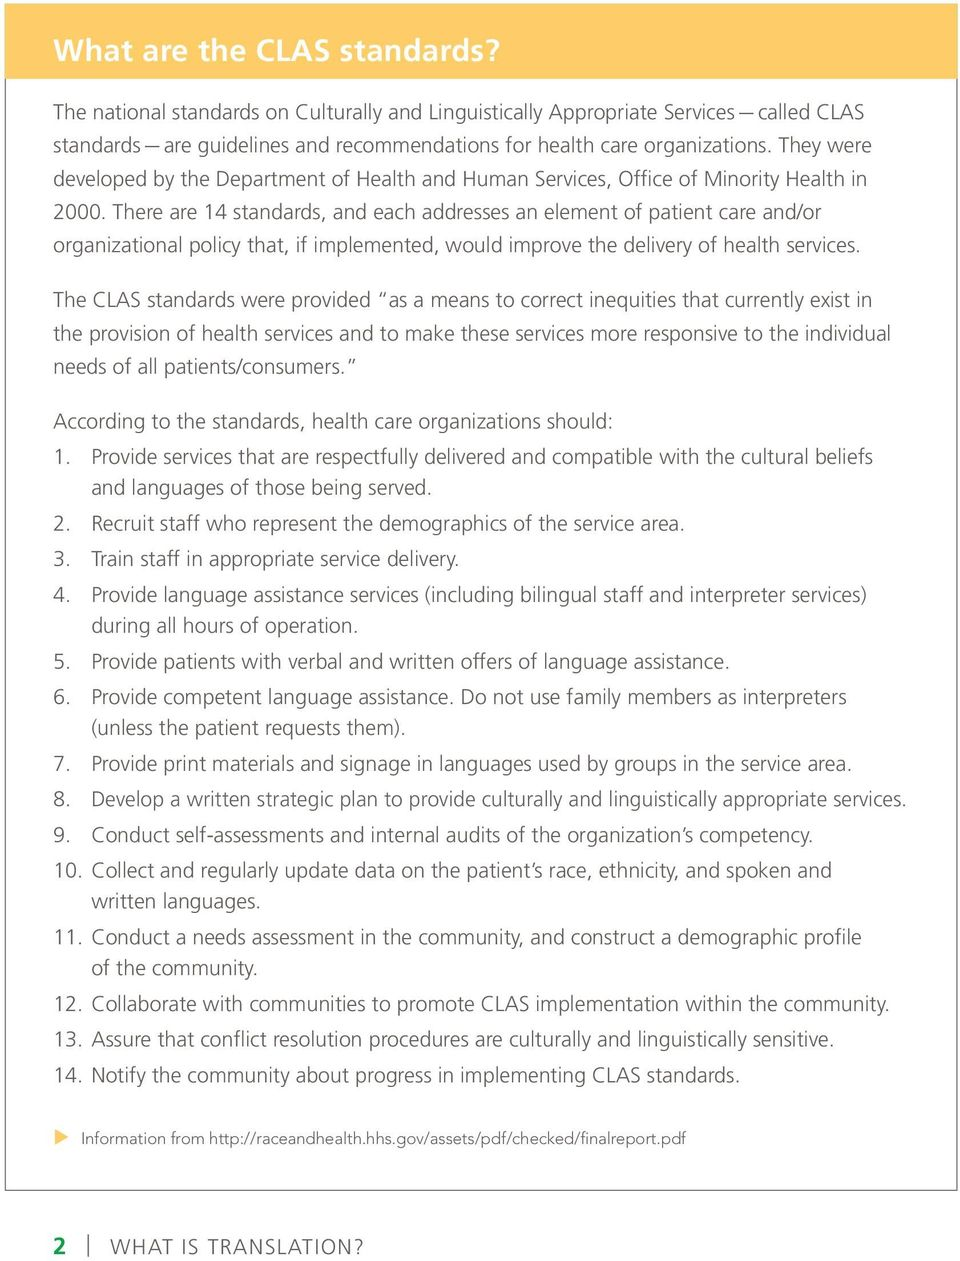 There are 14 standards, and each addresses an element of patient care and/or organizational policy that, if implemented, would improve the delivery of health services.